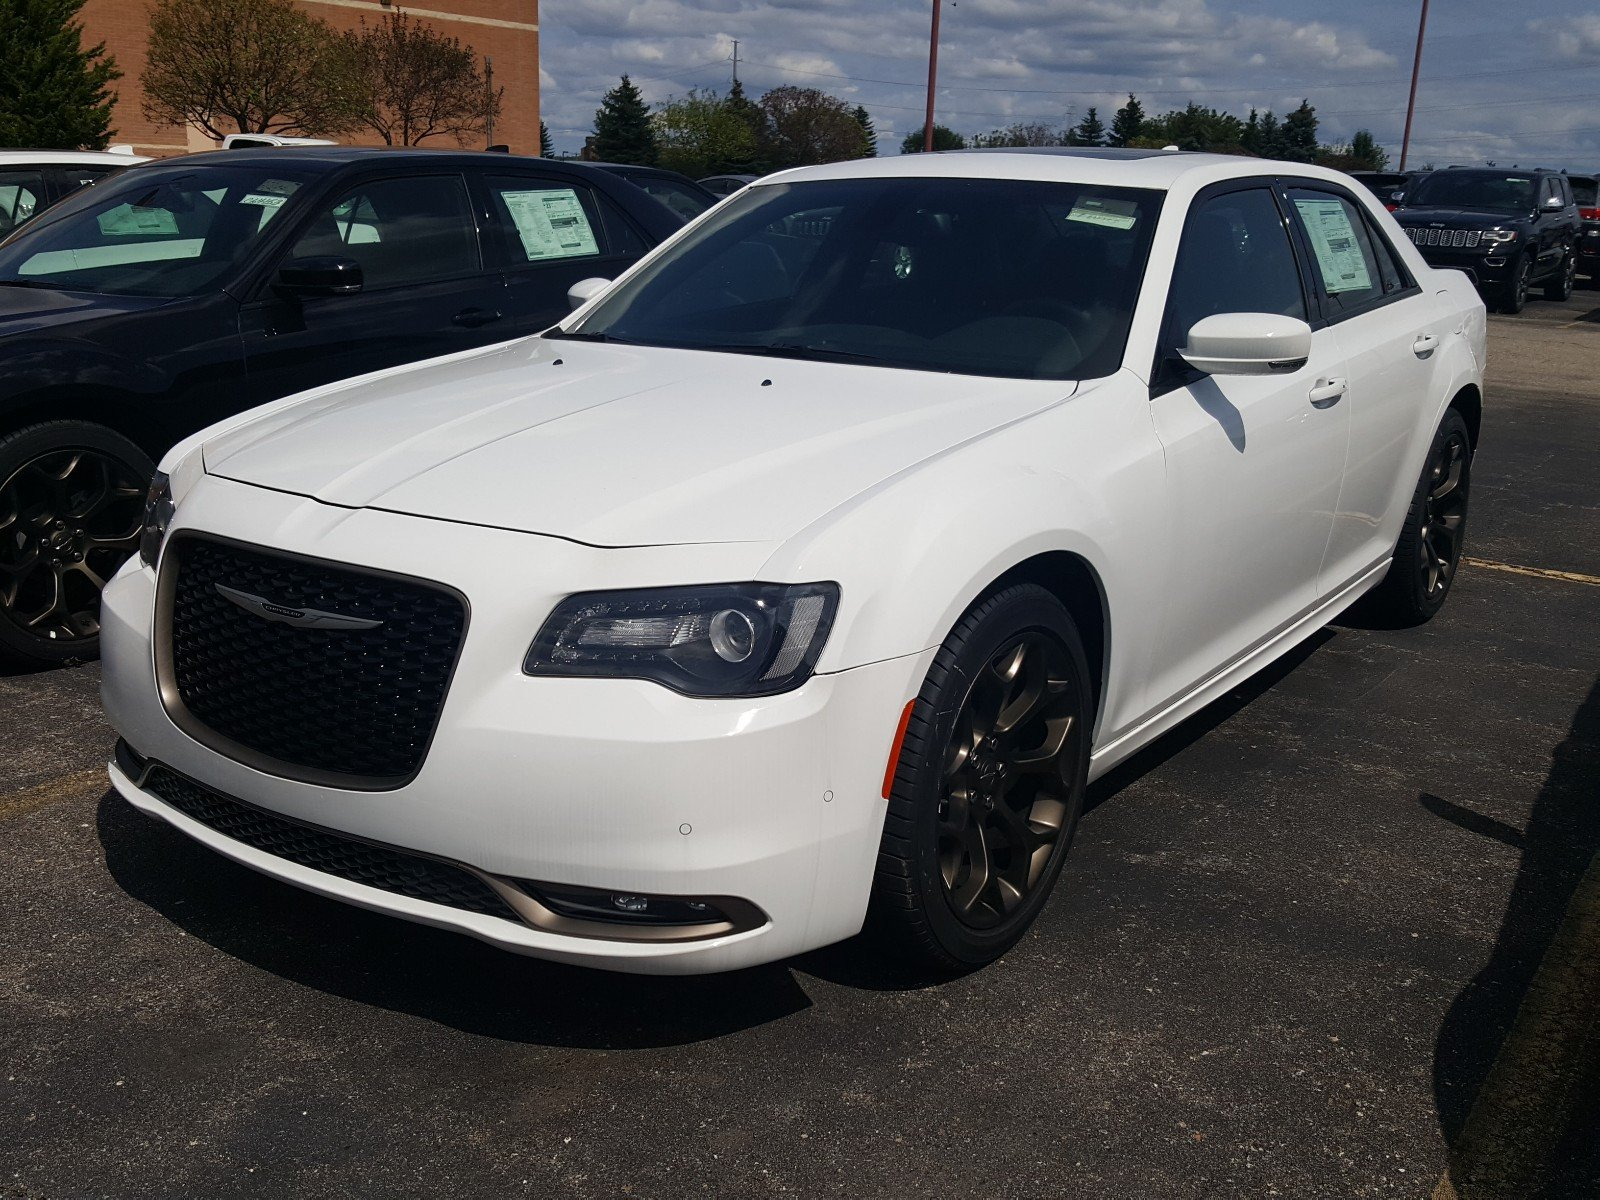 new 2016 chrysler 300 300s alloy edition sedan in washington c64158 orchard chrysler dodge. Black Bedroom Furniture Sets. Home Design Ideas